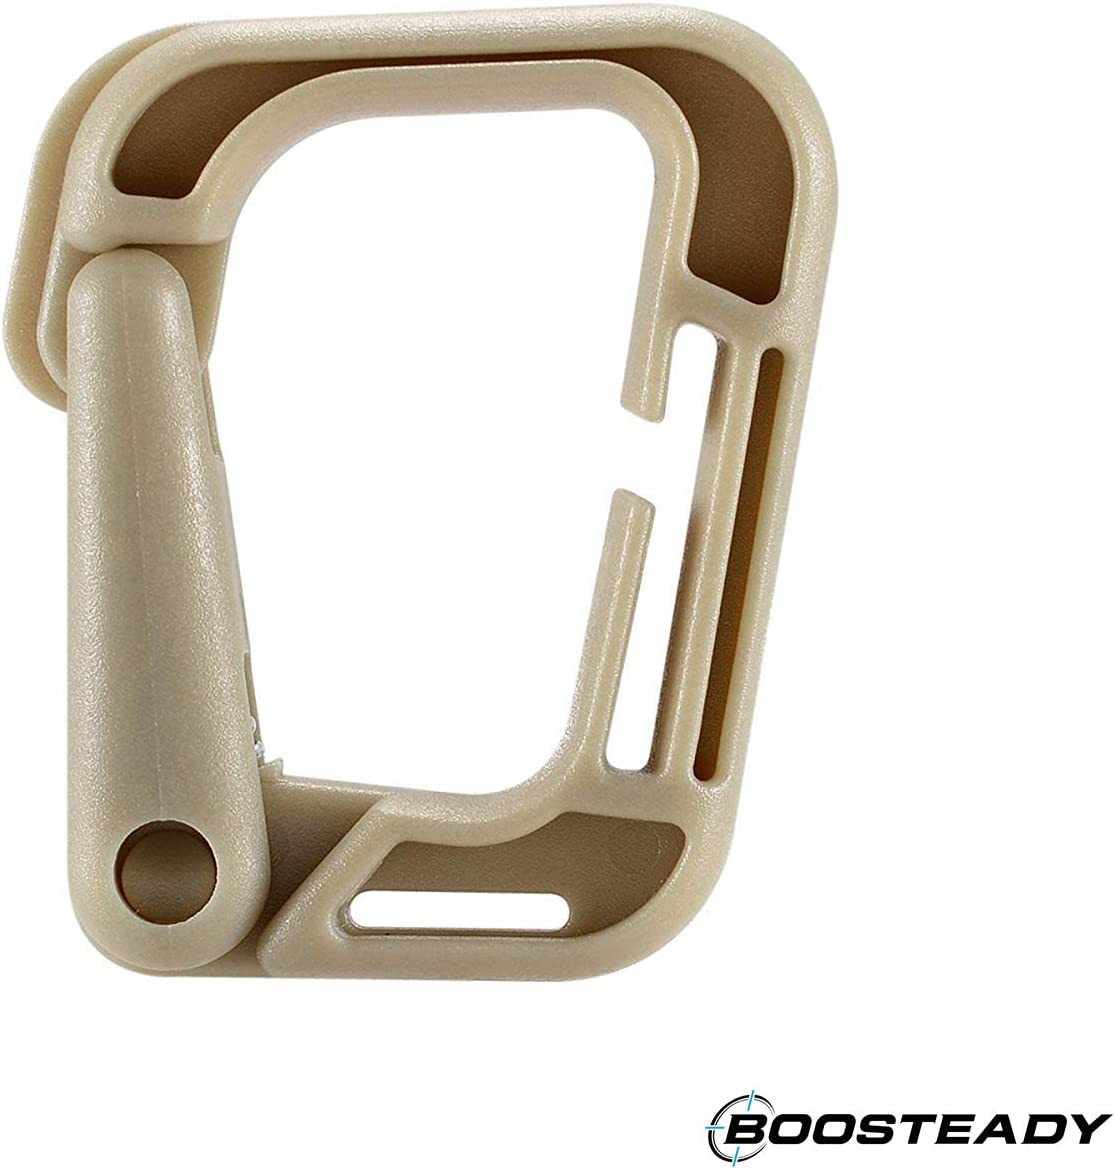 BOOSTEADY Multipurpose D-Ring Locking Hanging Hook Tactical Link Snap Keychain for Molle Webbing with Zippered Pouch